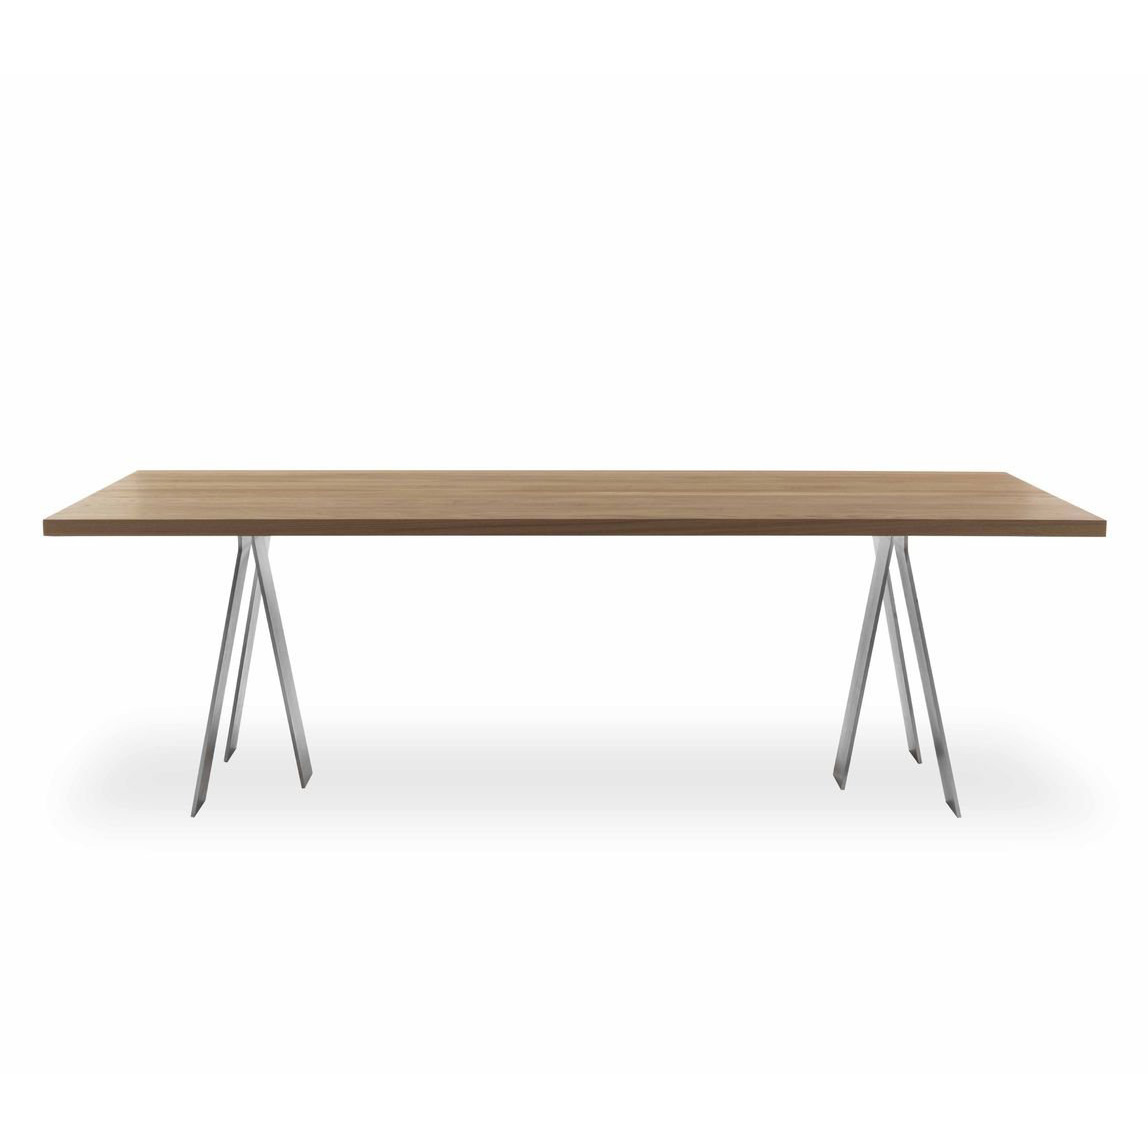 Cape Kennedy dining table from Riva 1920